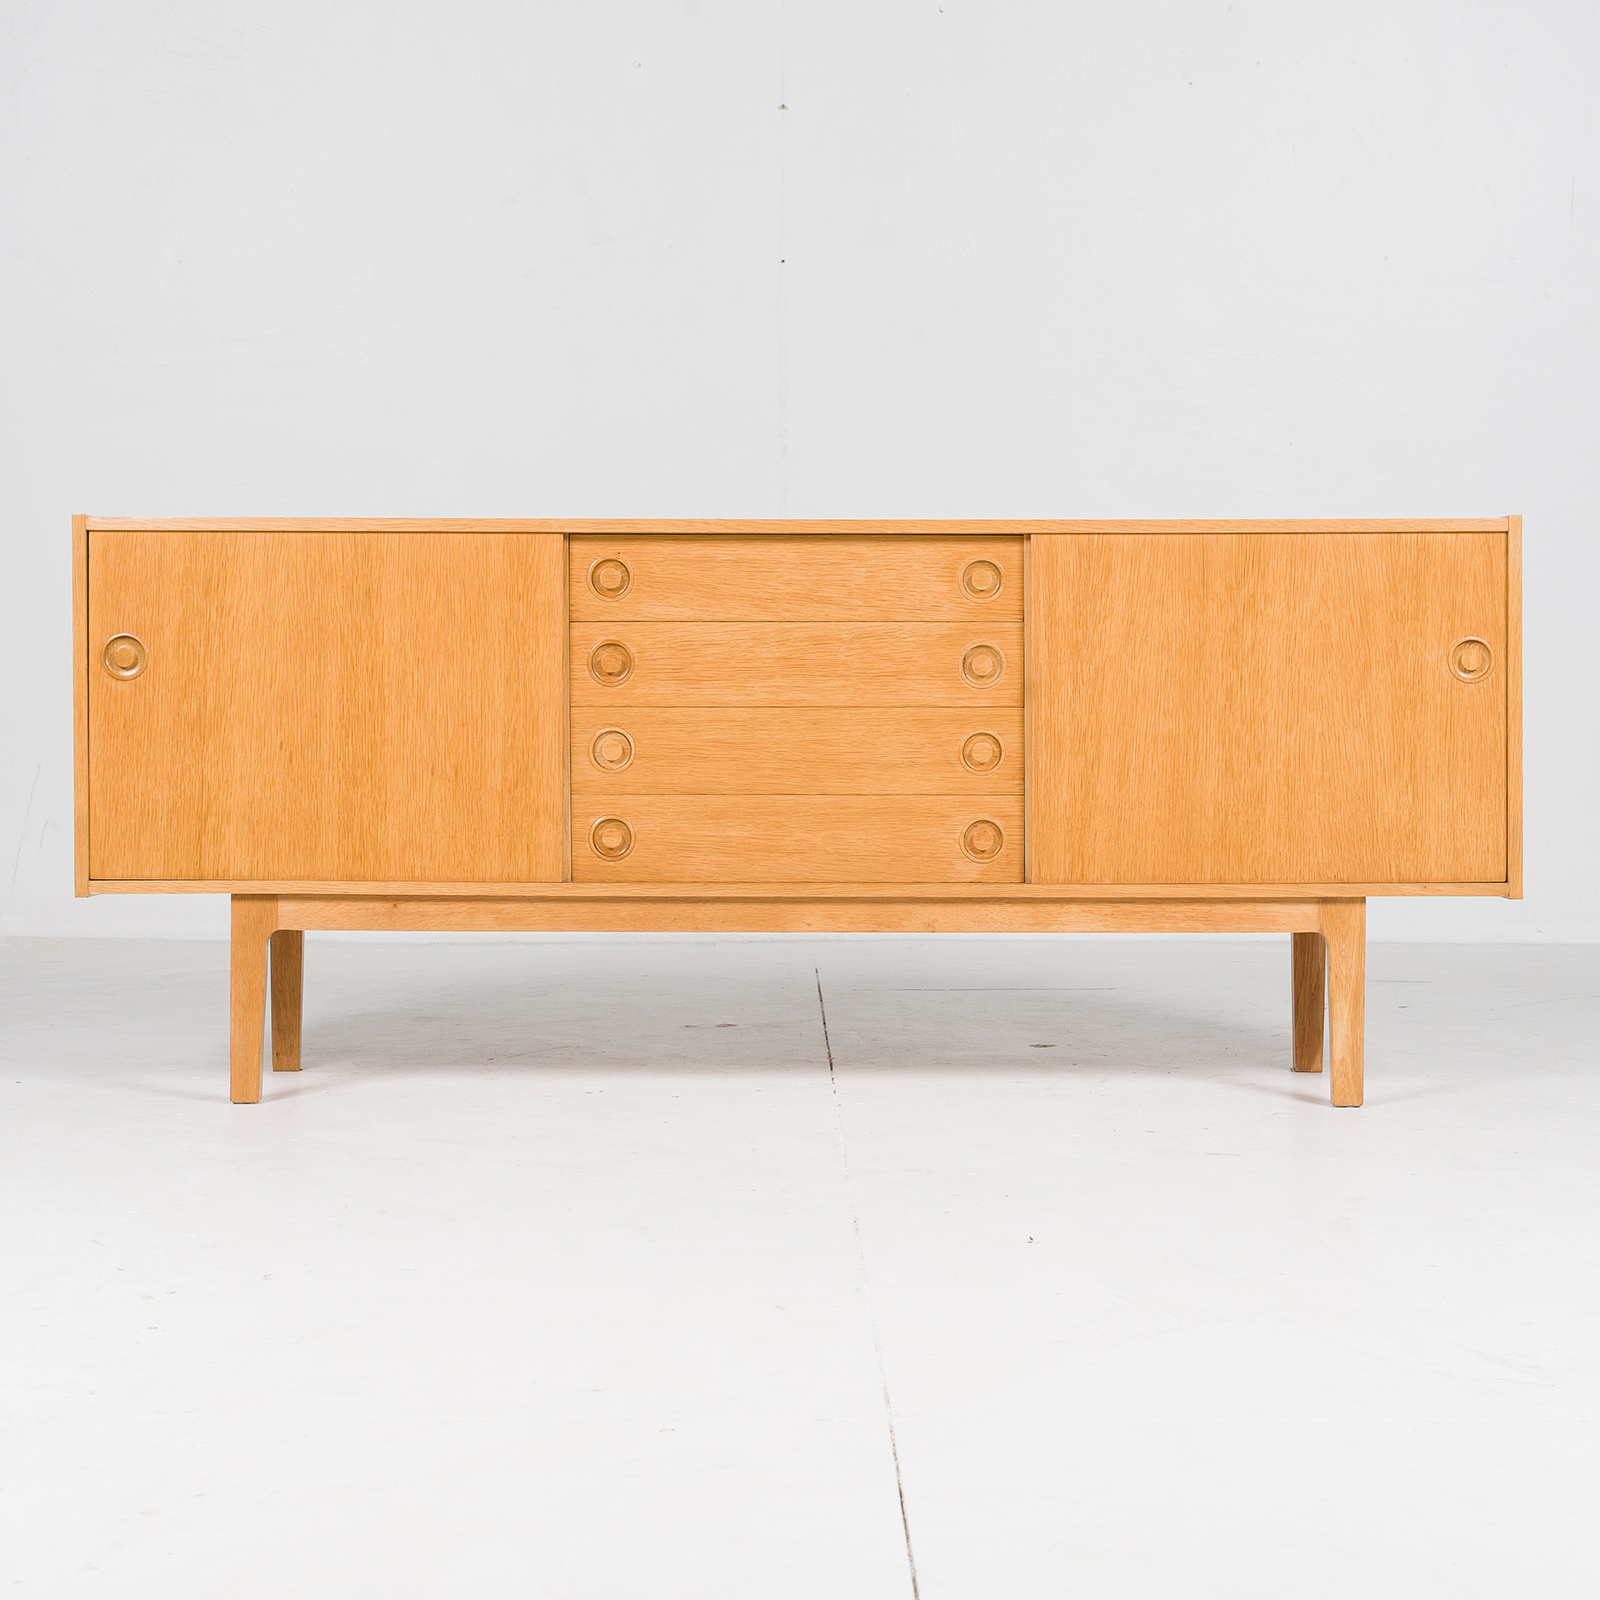 Sideboard In Oak With Drawers And Sliding Doors, 1960s, Denmark397